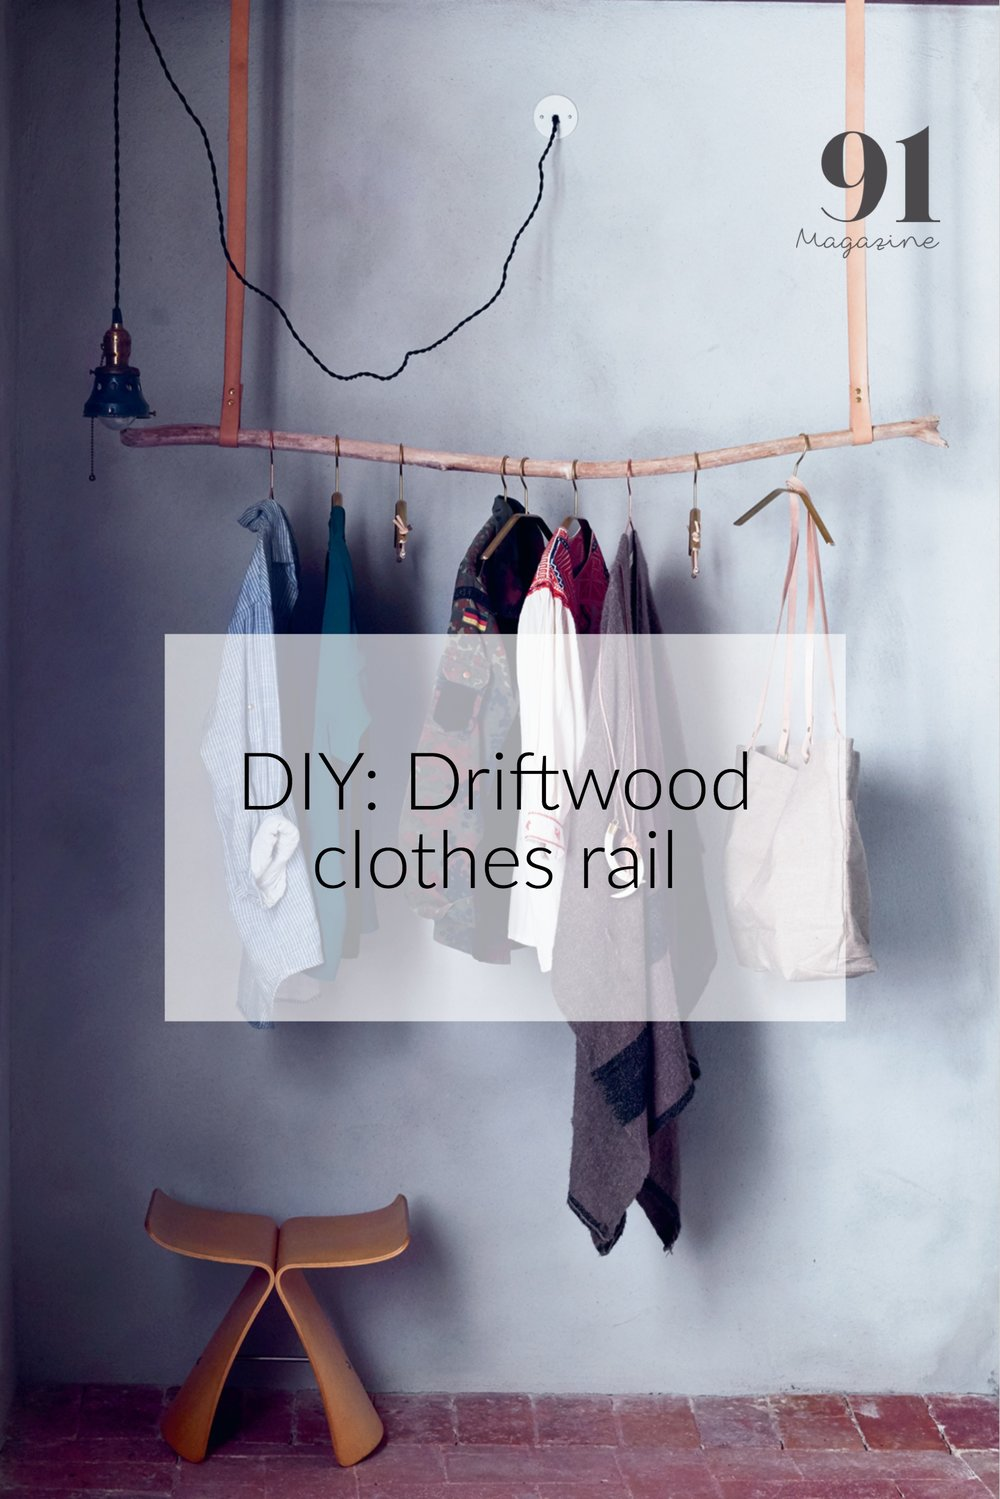 DIY Make your own driftwood clothes rail